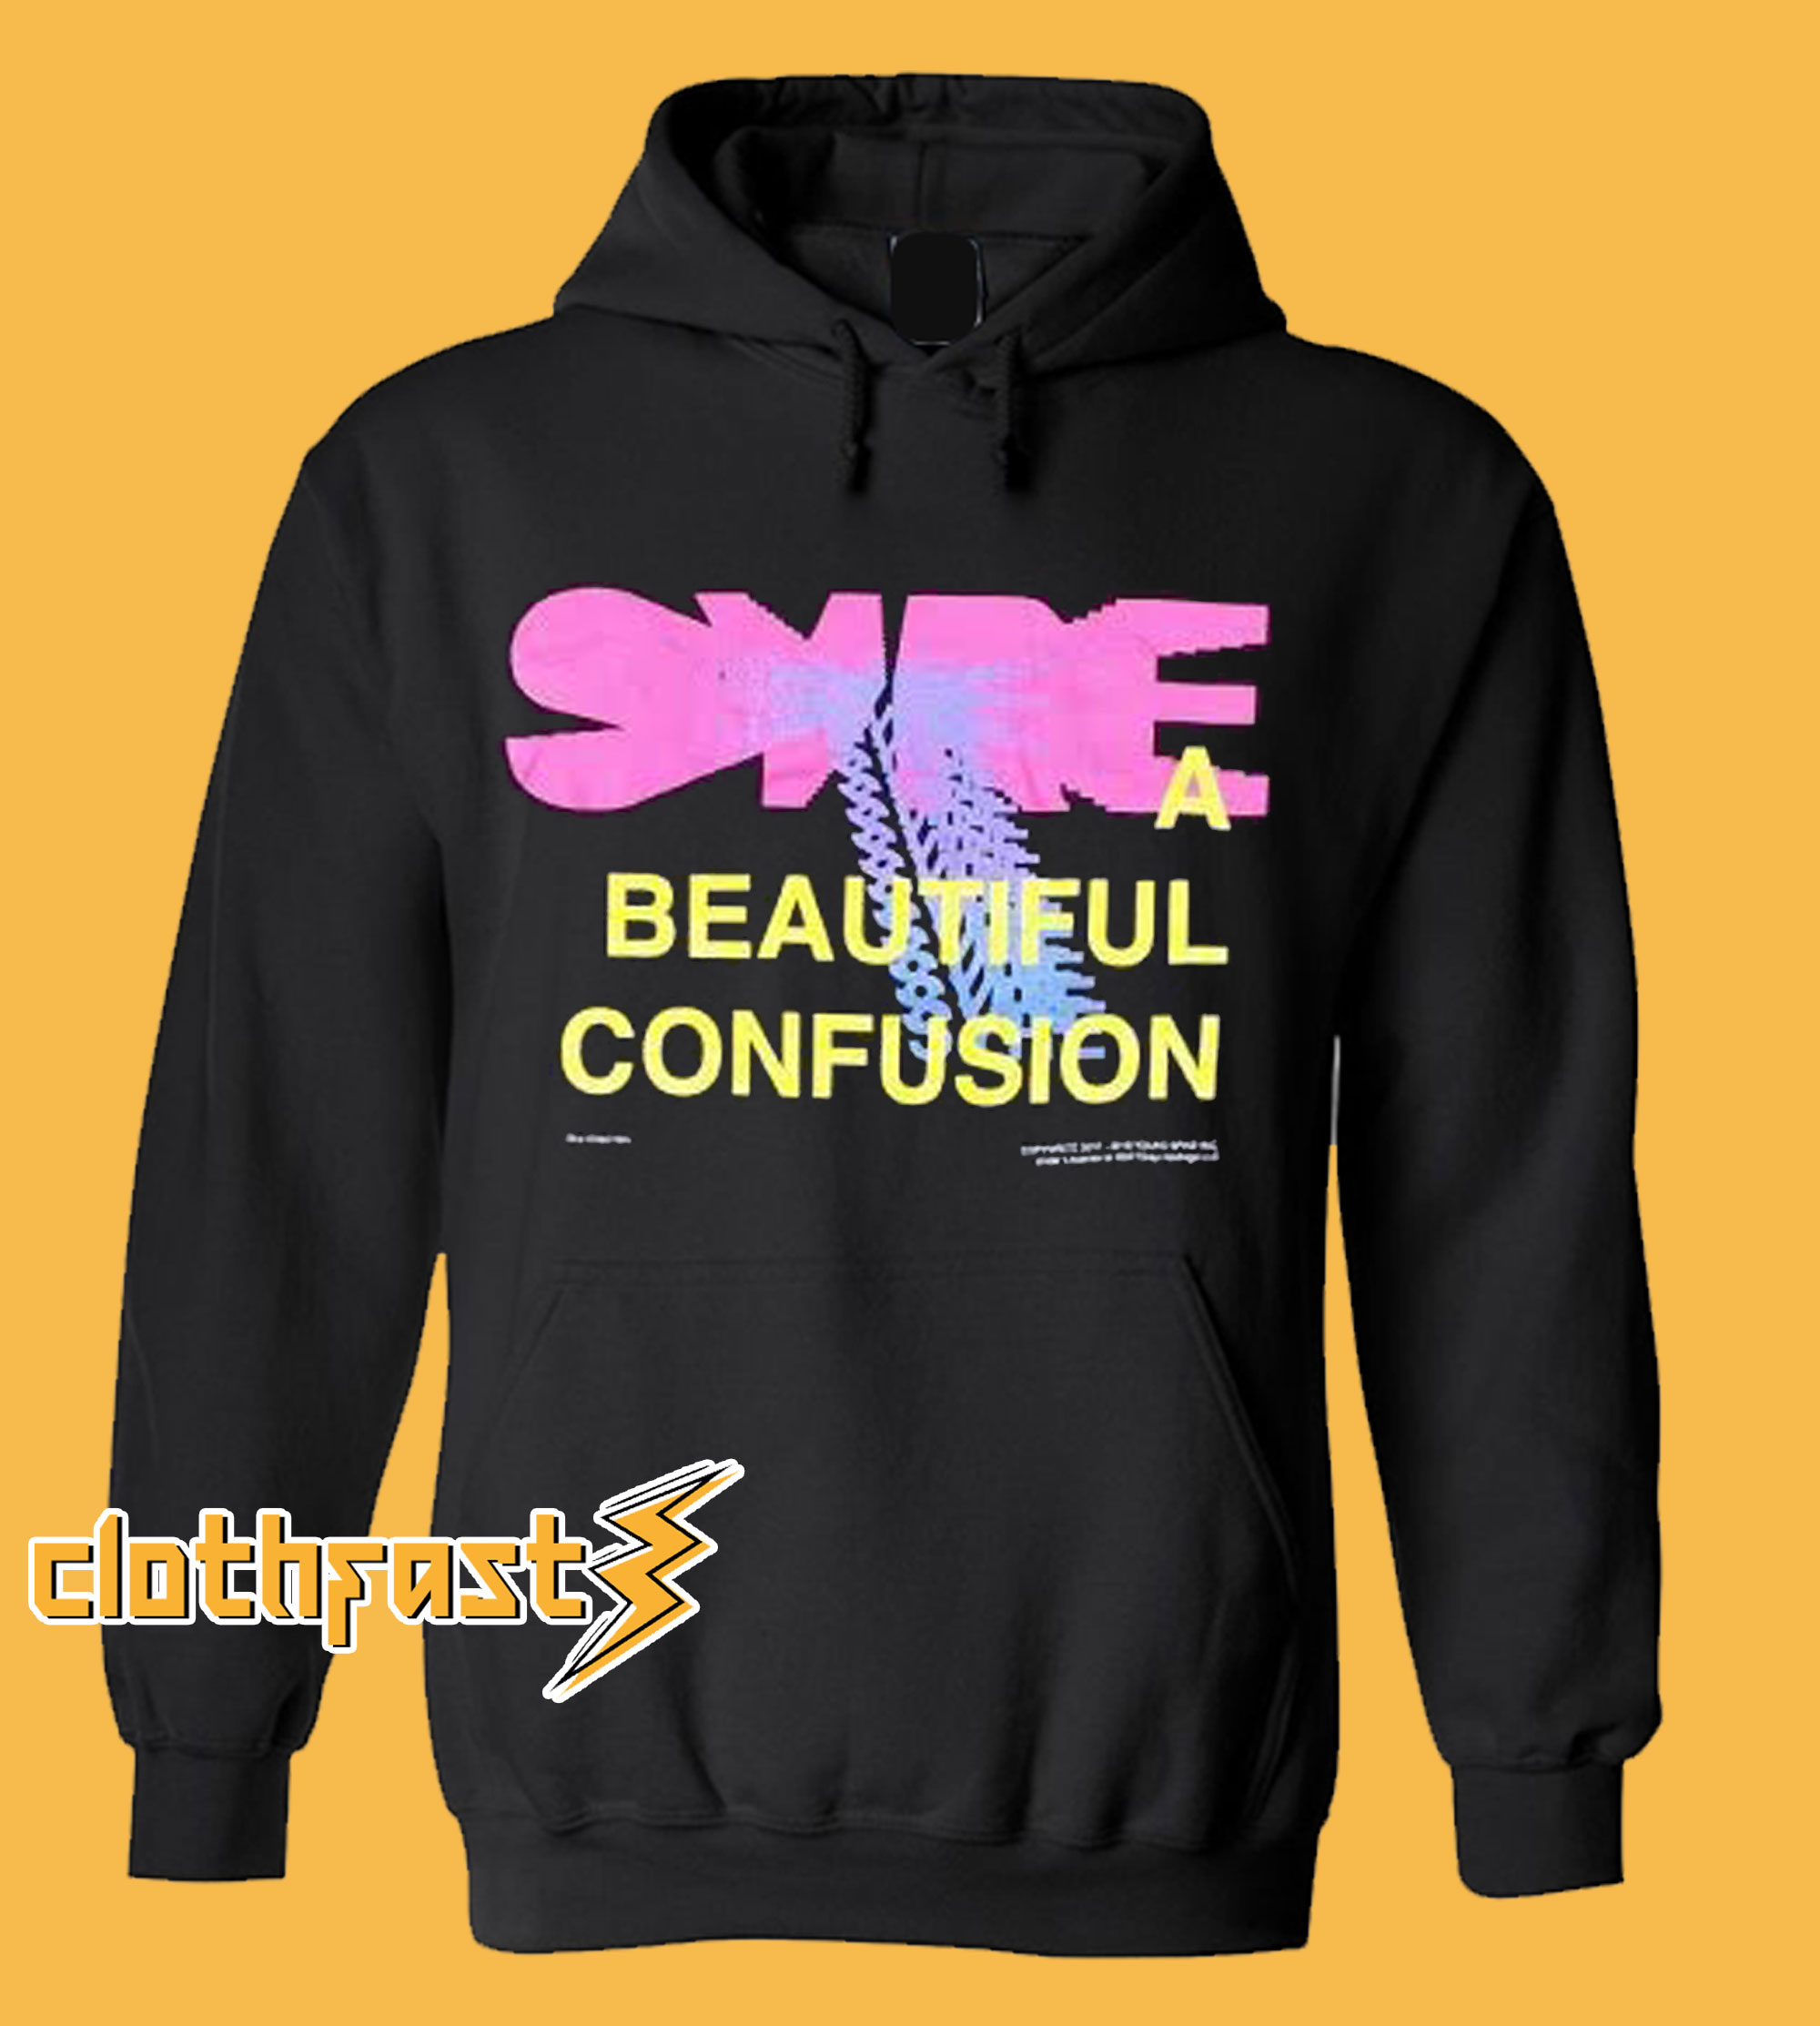 Syre A Beautiful Confusion Hoodie